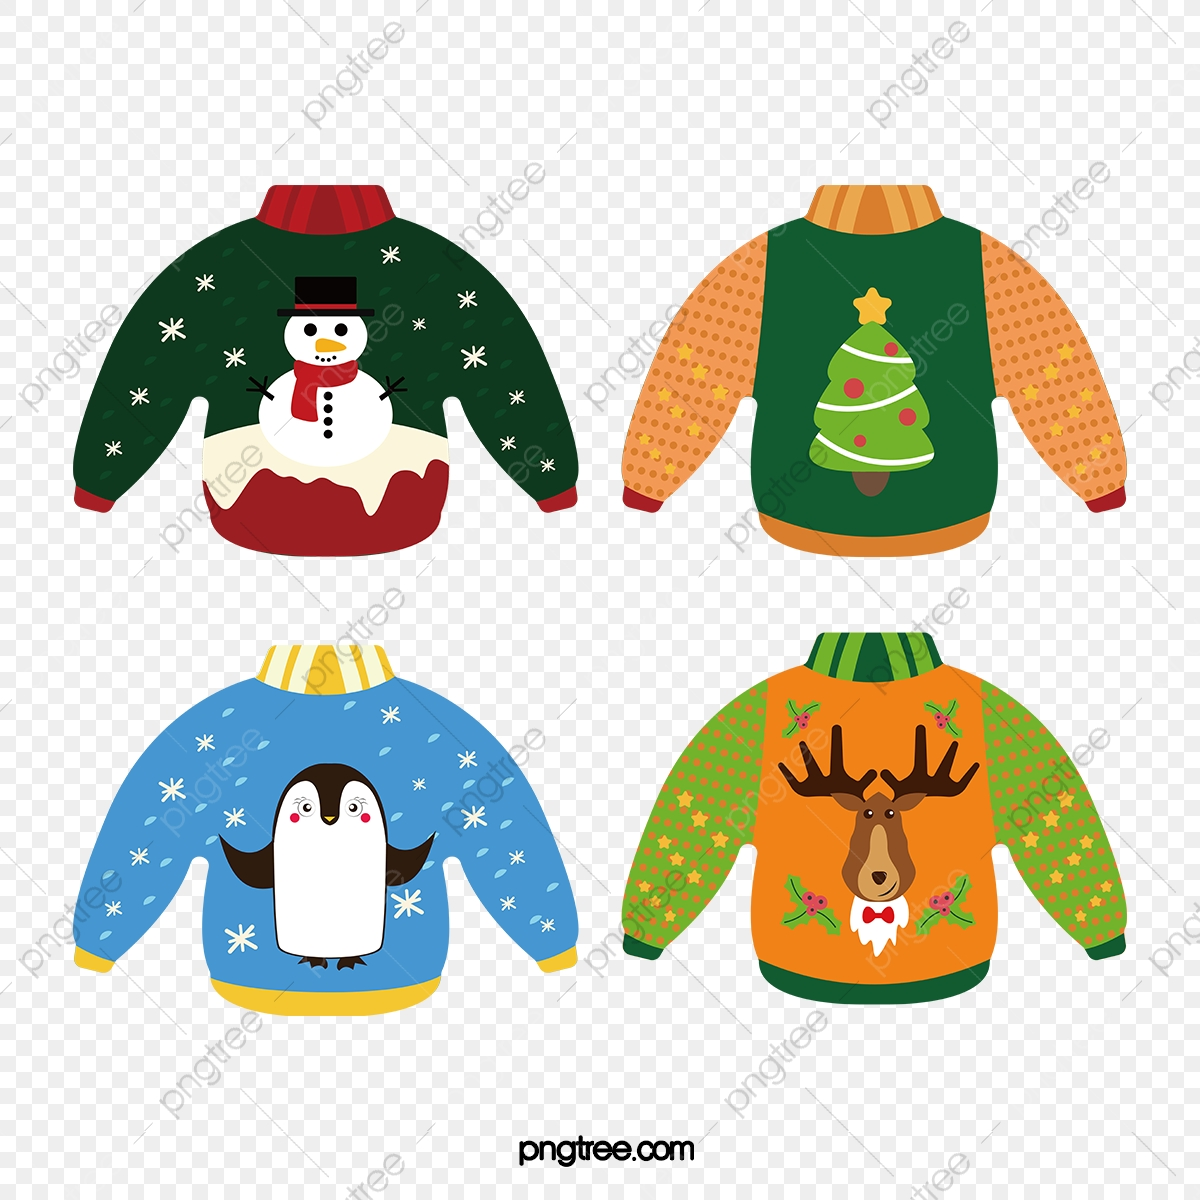 Christmas Sweater Png Vector Psd And Clipart With Transparent Background For Free Download Pngtree